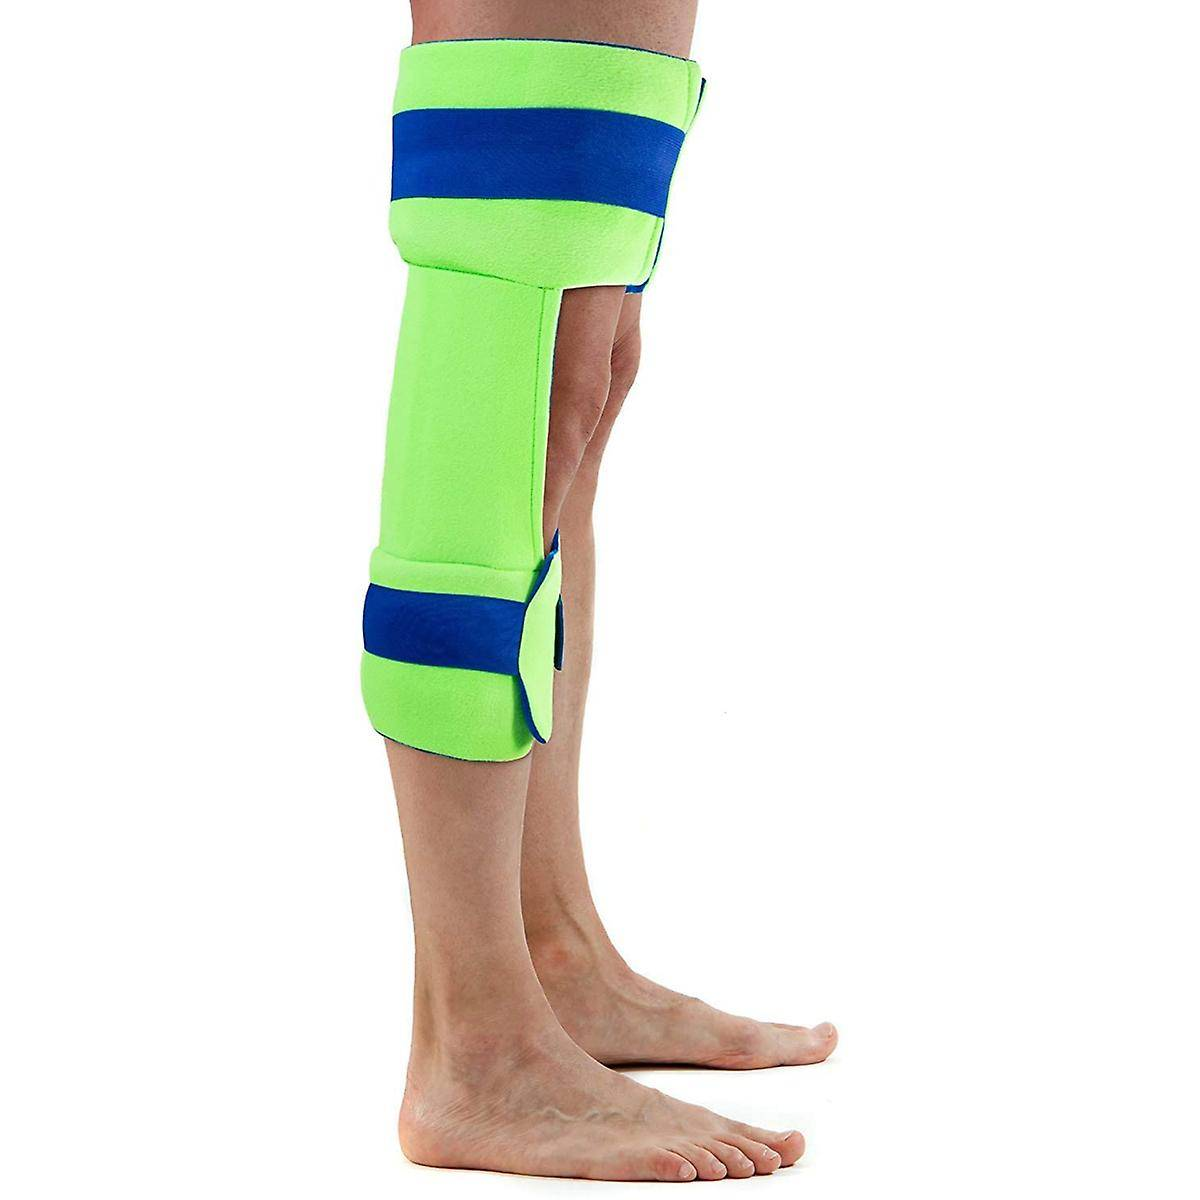 Polar Ice CPM Knee Wrap and Brace - Universal - Cryothérapie Cold Therapy Pack Vert/bleu One Size